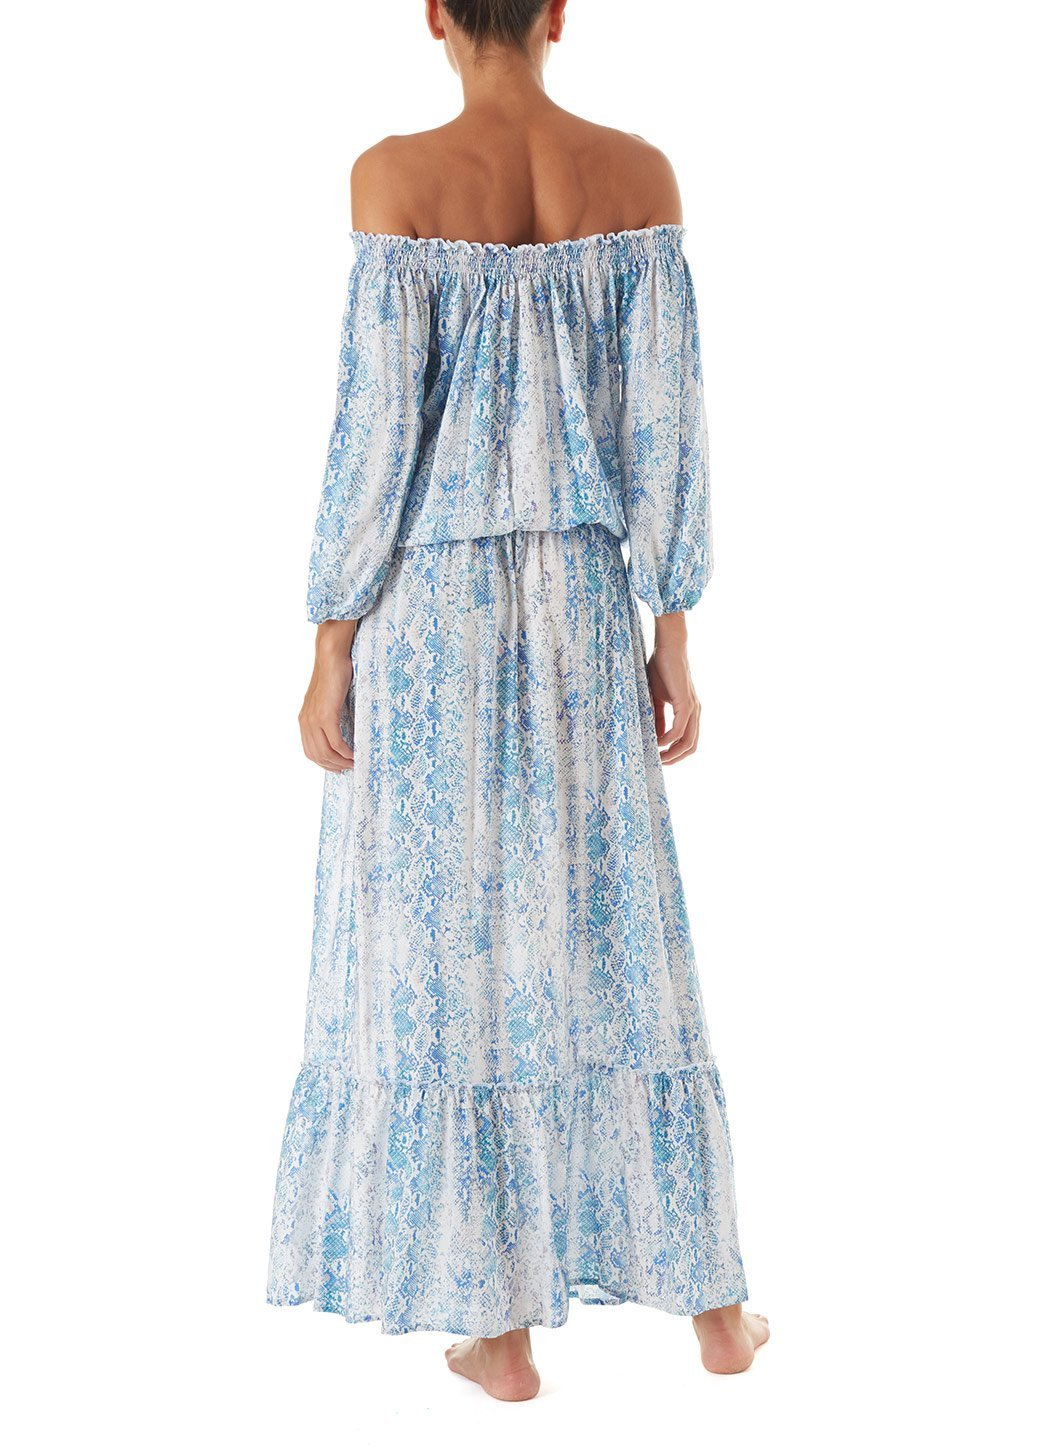 faith serpente offtheshoulder maxi dress 2019 B